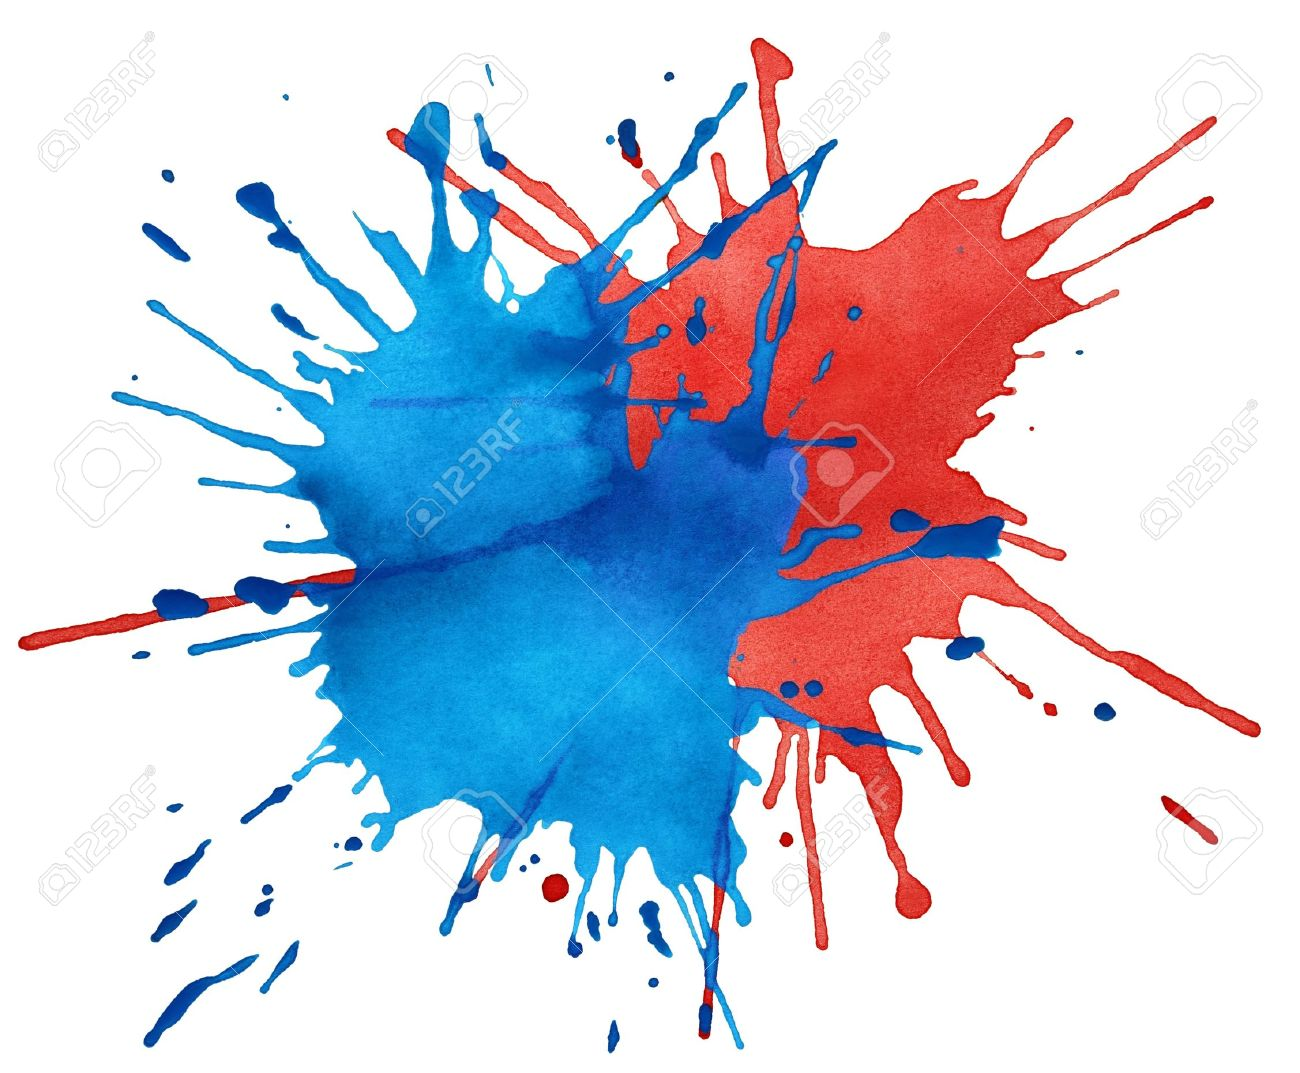 Blot of blue and red watercolor isolated on white Stock Photo - 13356312